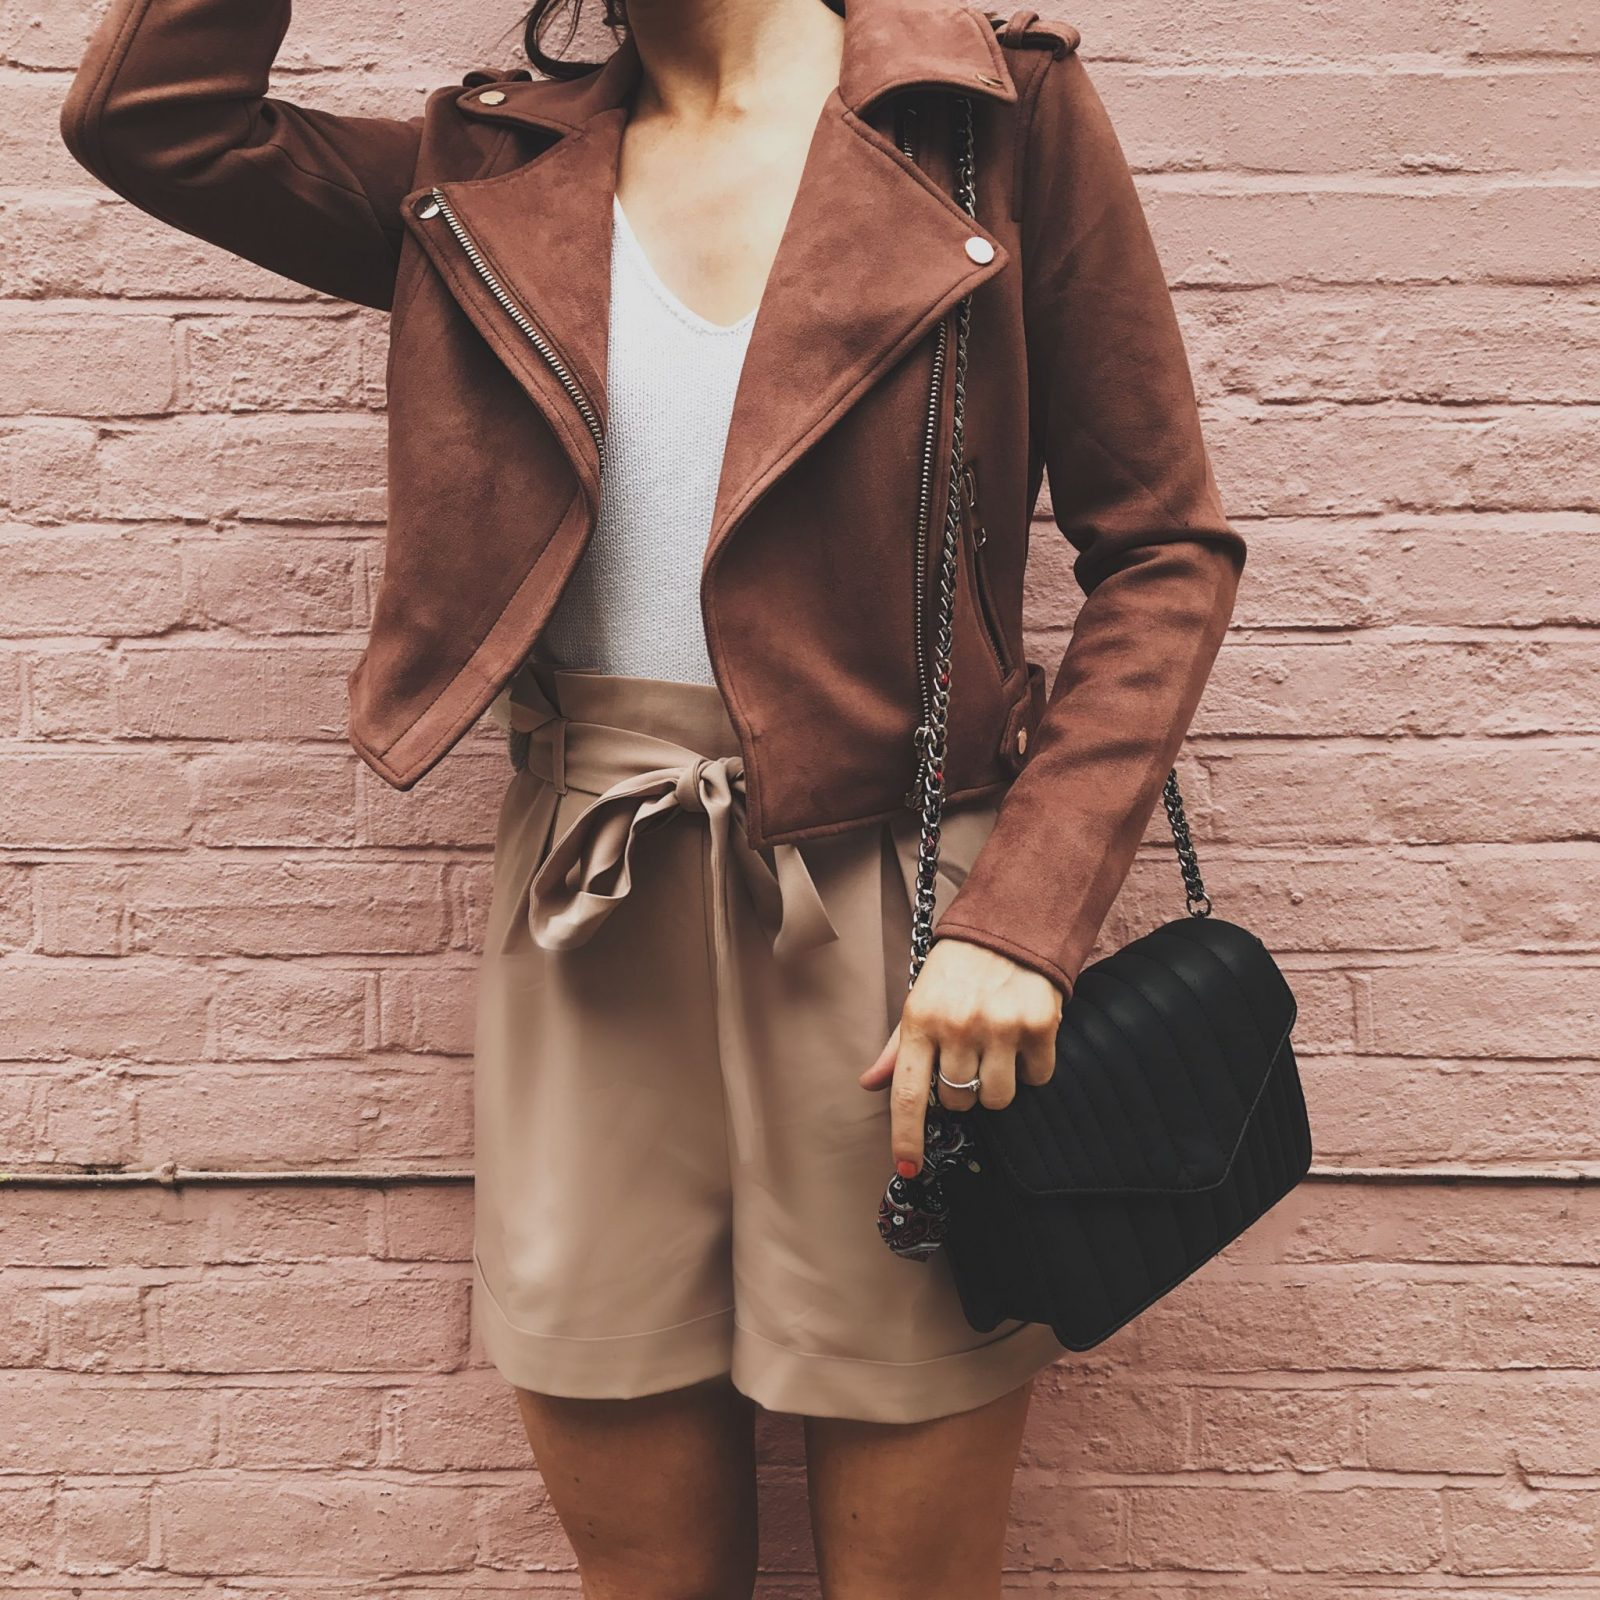 River-Island-pink-suede-jacket-and-tailored-shorts_EllaRyderIMG_4524-1600x1600.jpg